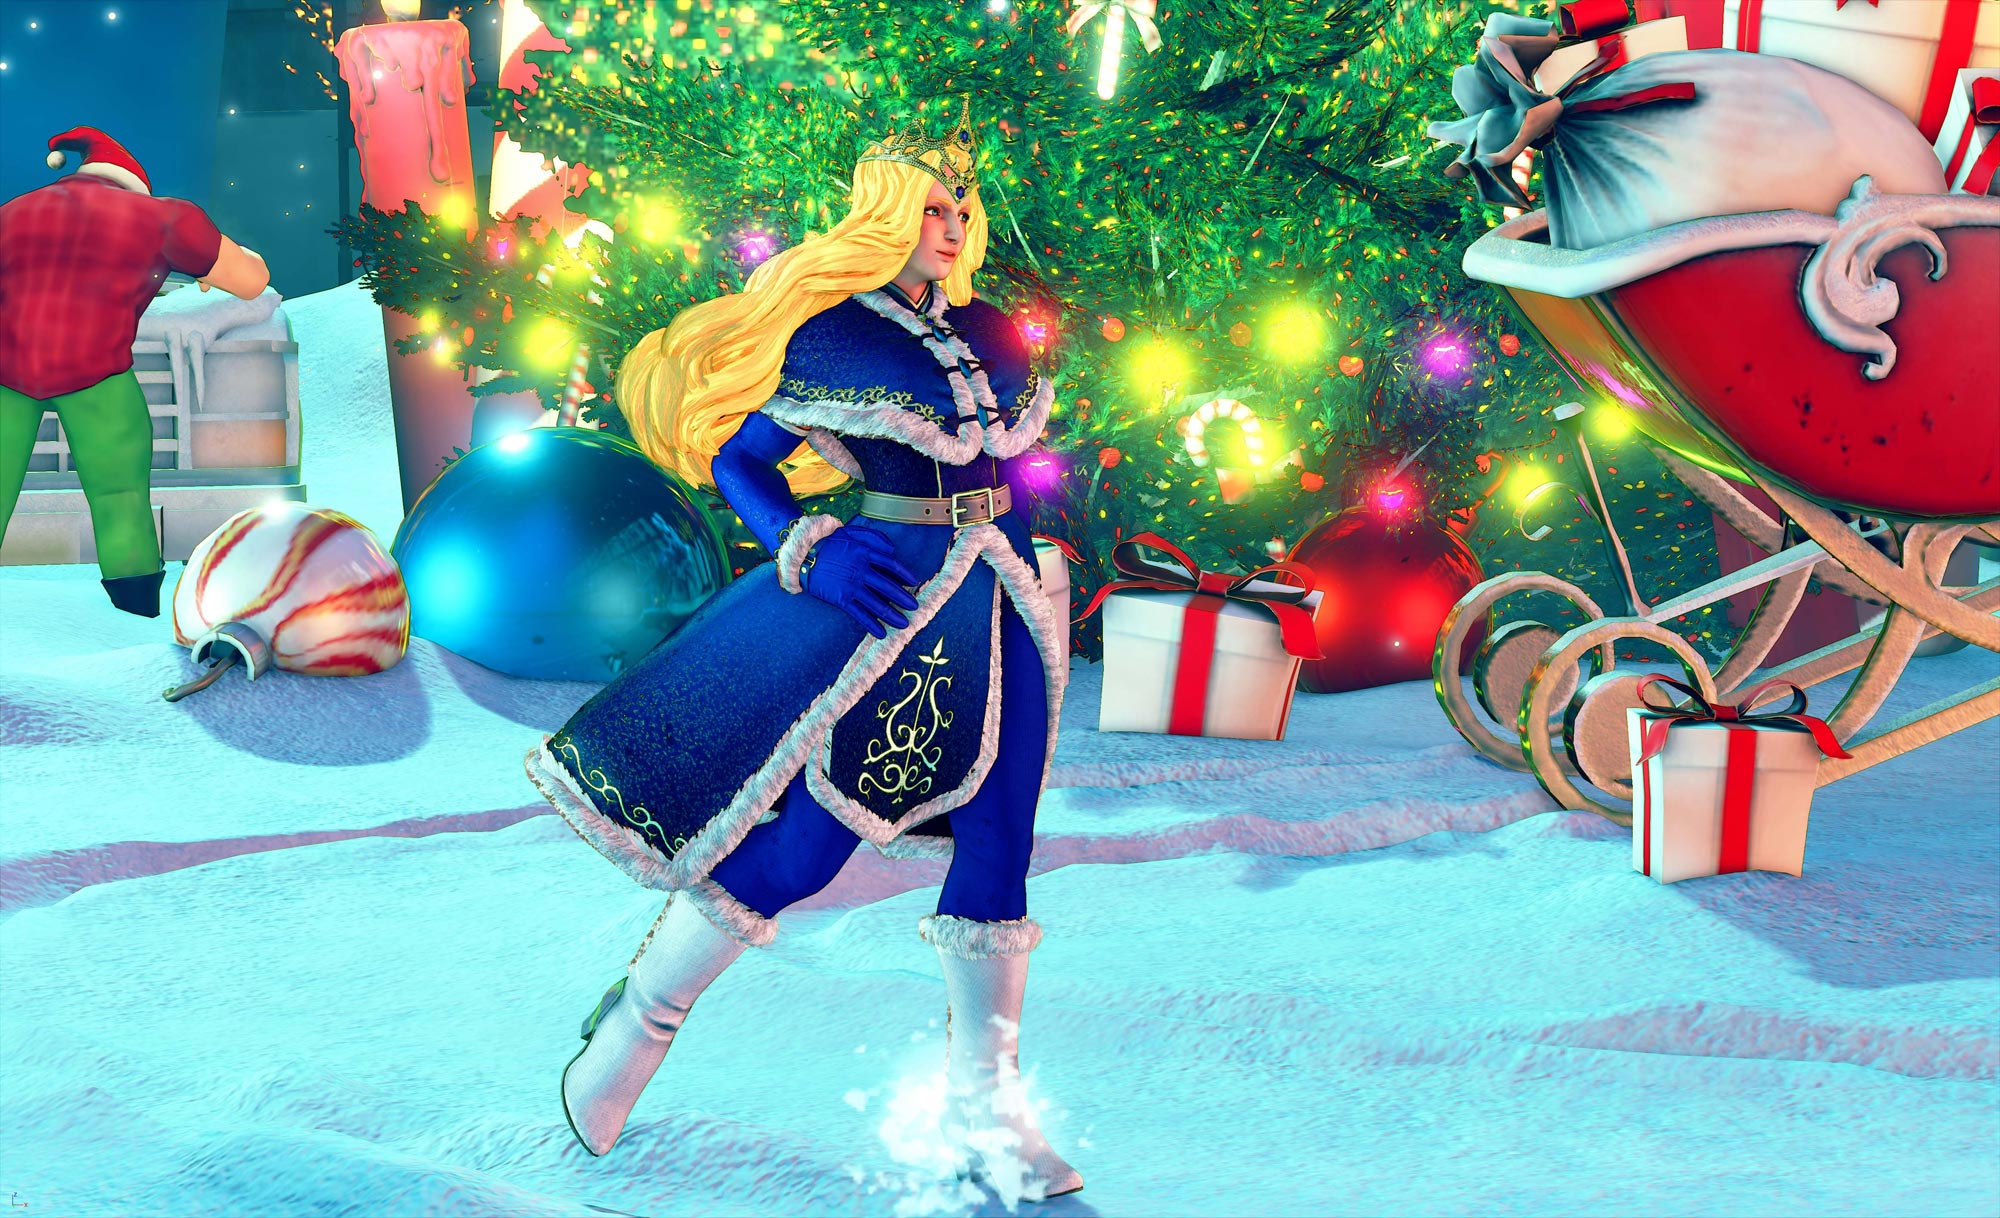 New hoilday and classic costumes in Street Fighter 5 3 out of 10 image gallery